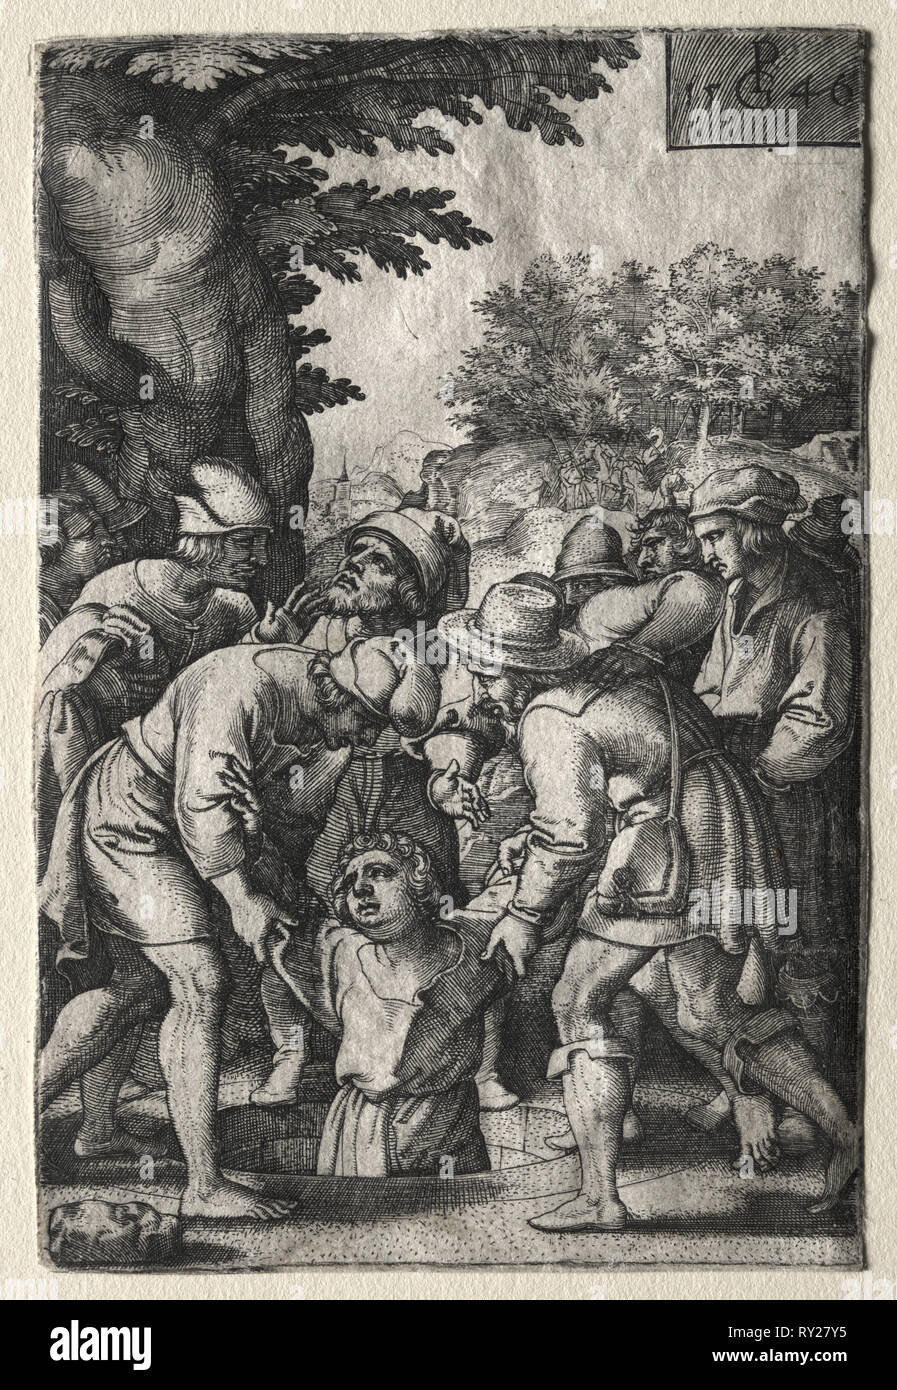 Joseph Lowered into a Well, 1546. Georg Pencz (German, c. 1500-1550). Engraving - Stock Image